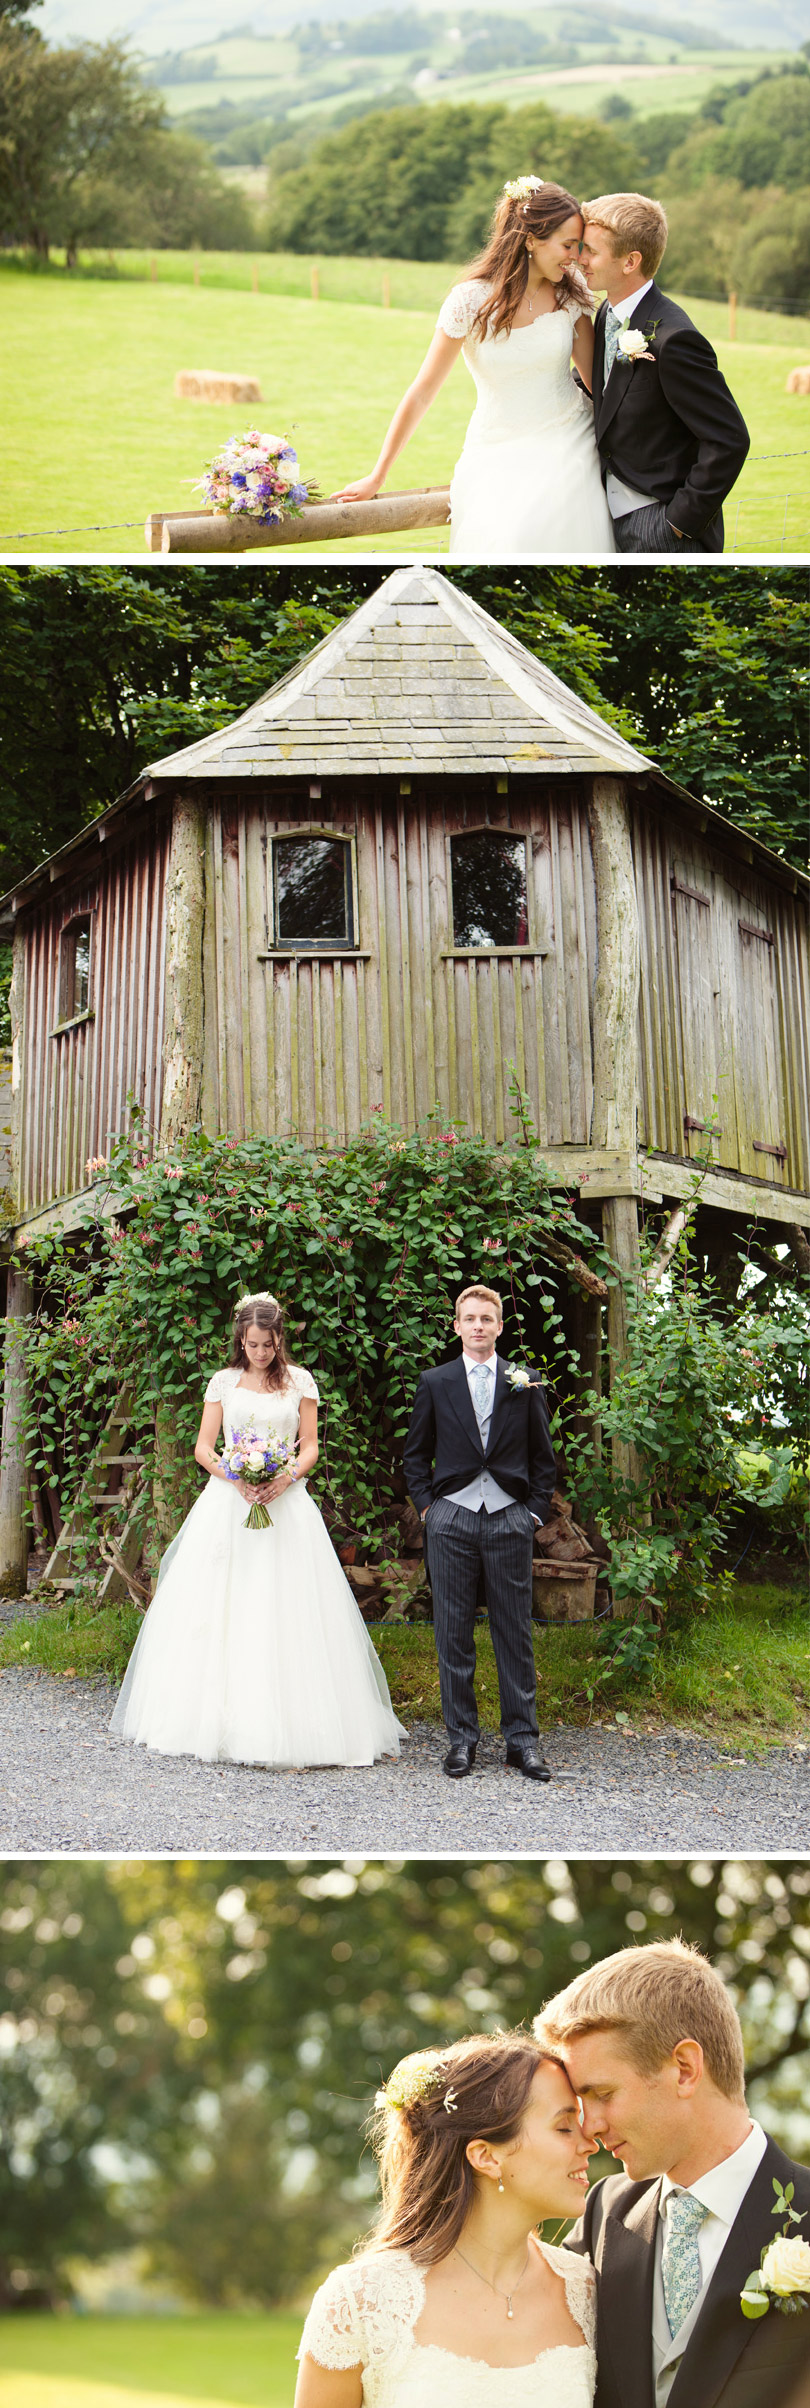 Emily&DaveS_Wales_12.jpg